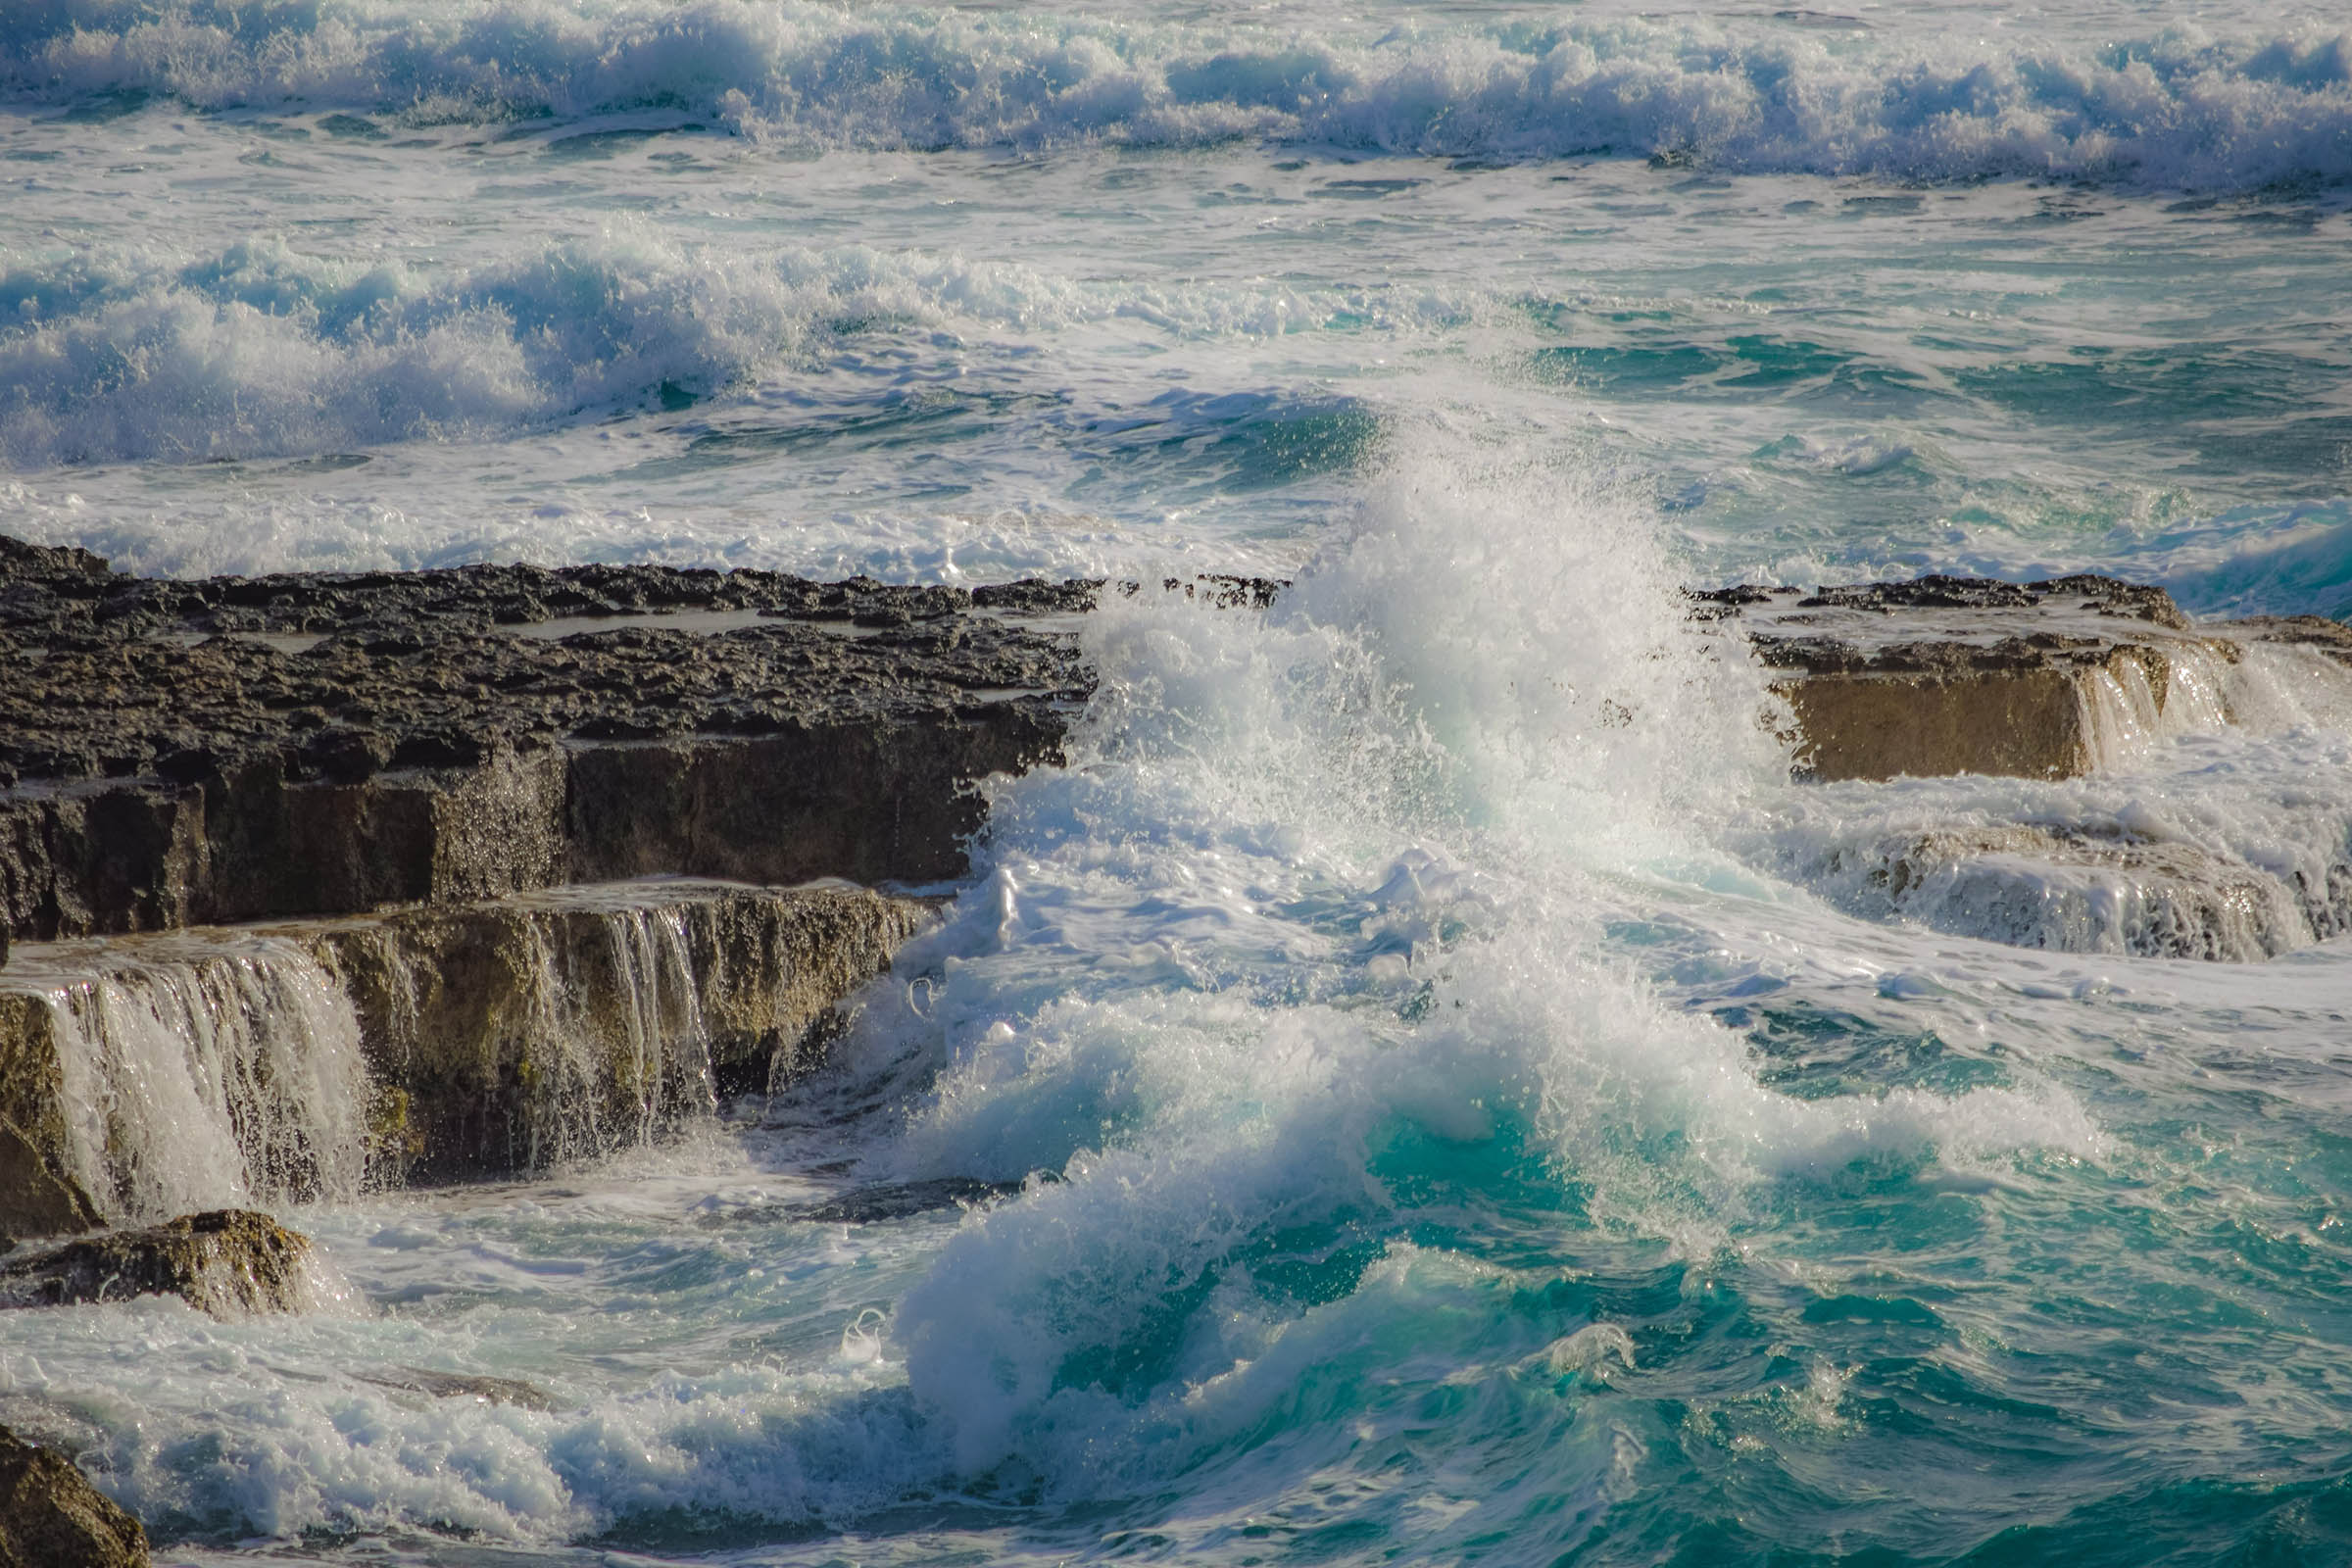 Ocean Waves - Shaping the Earth